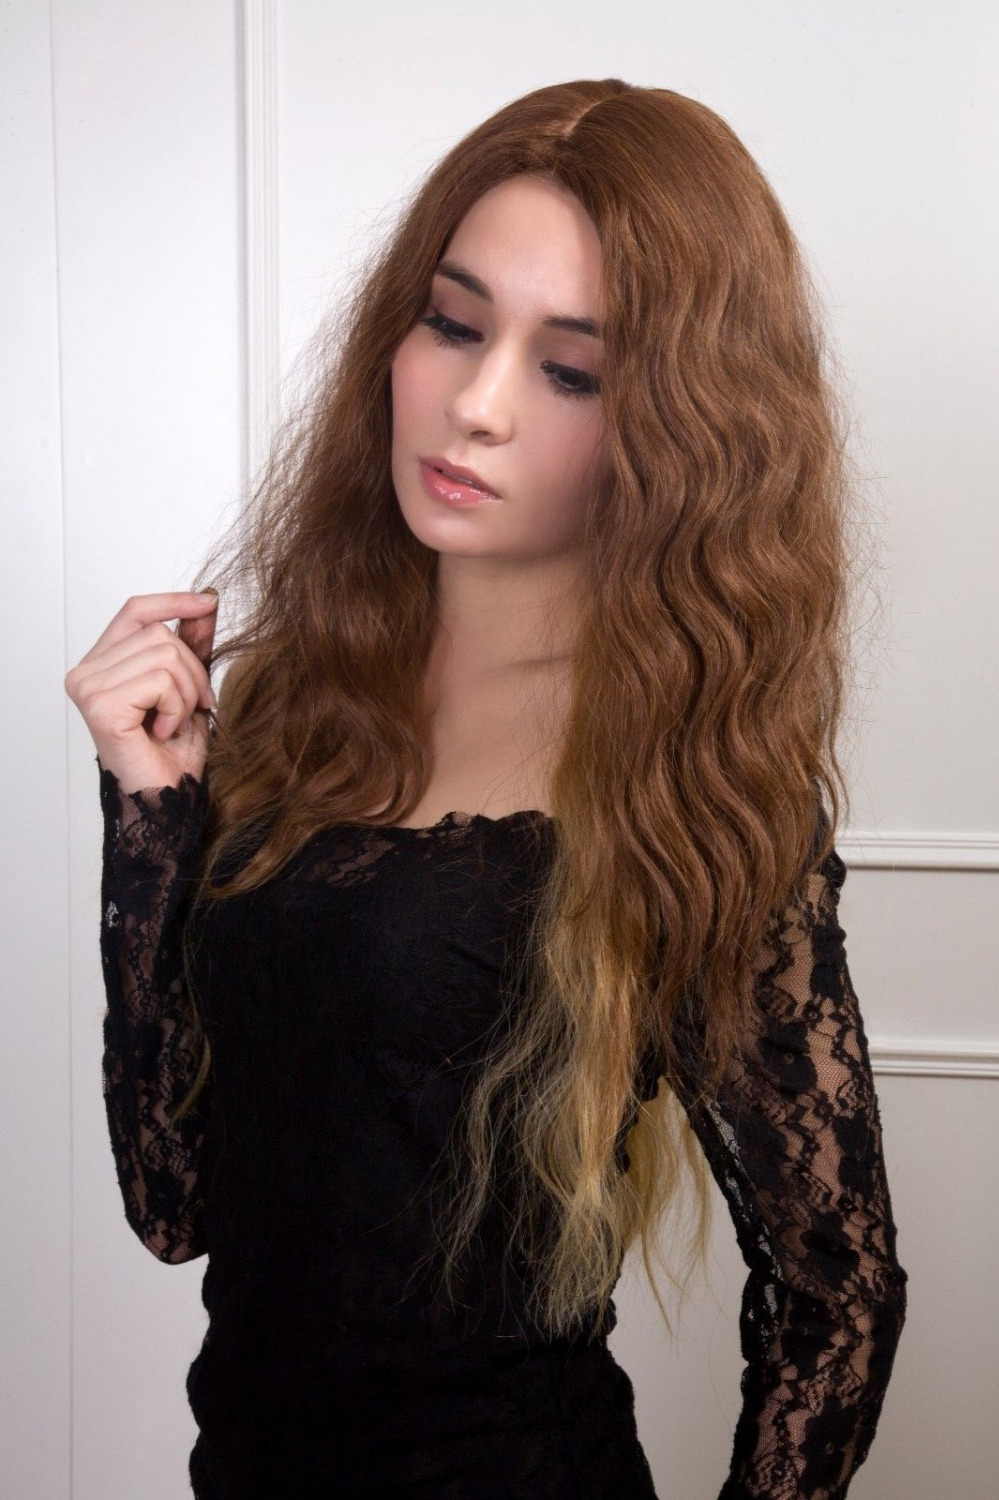 0000120 new fashion female glamor side skin part high-end synthetic hair wig no bangs